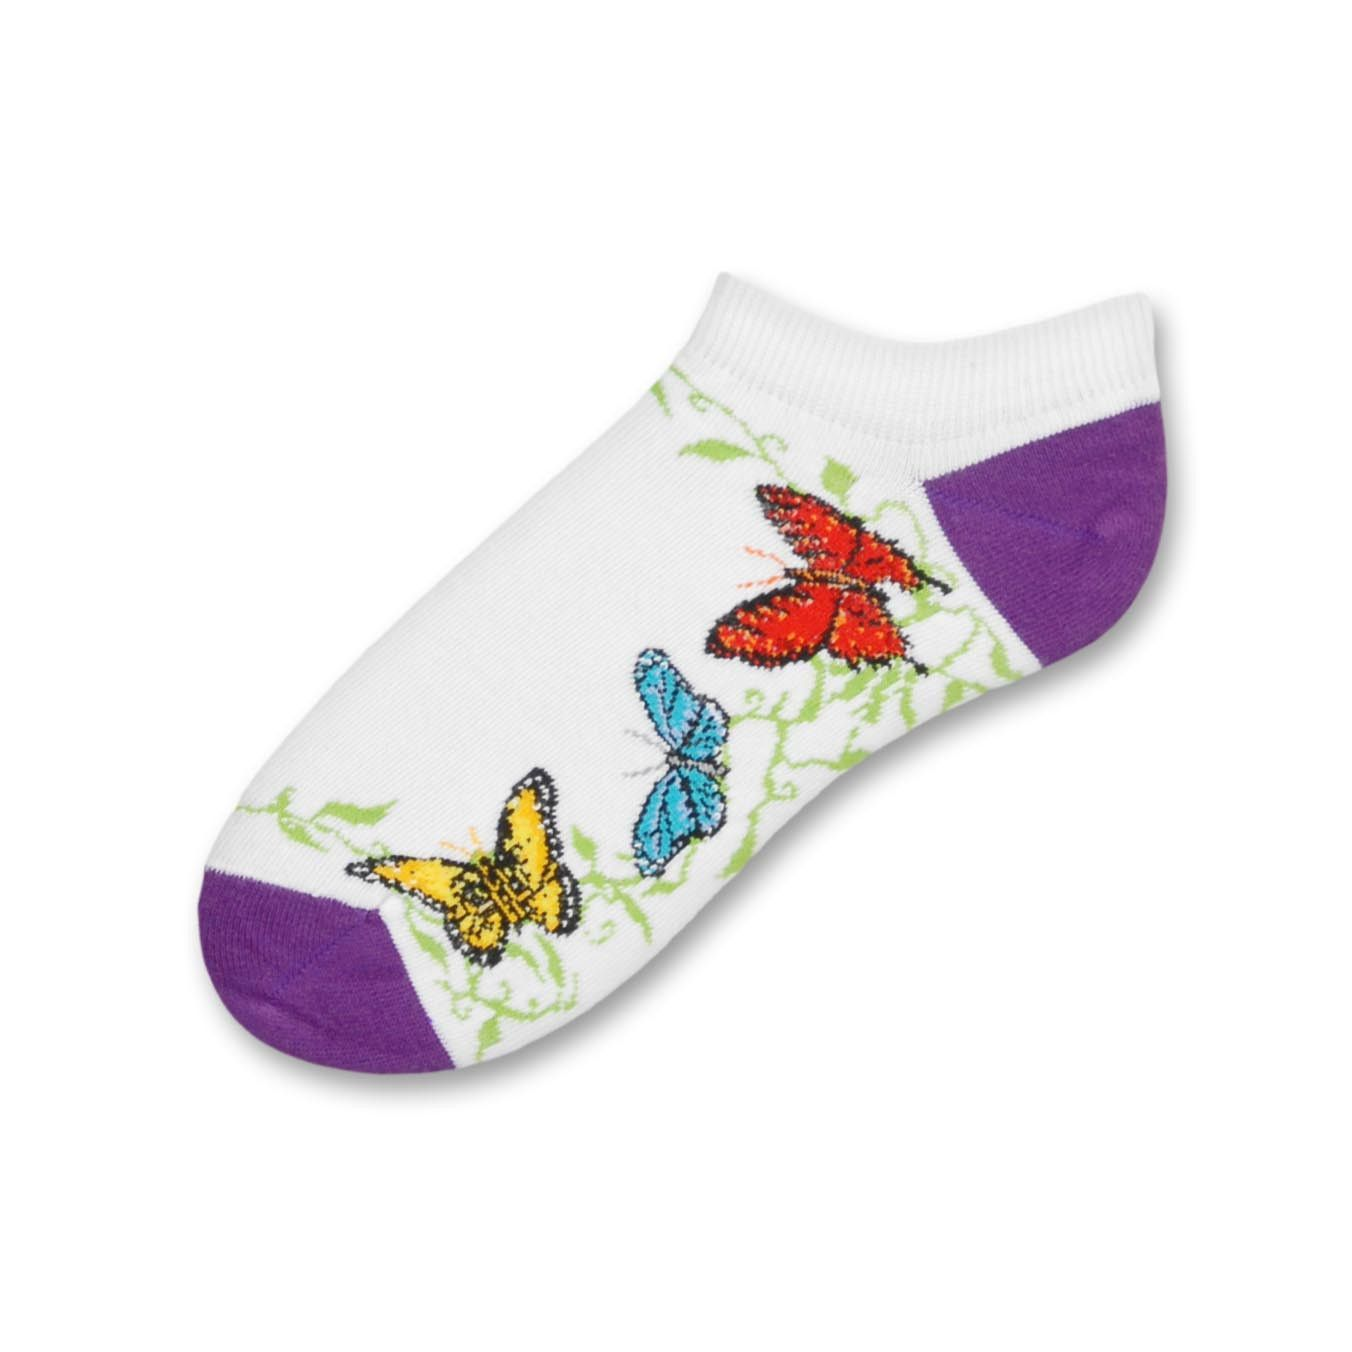 c62dcd3d59 FBF Butterfly Friends Sock is a No Show Thin Style Sock with White  background. The